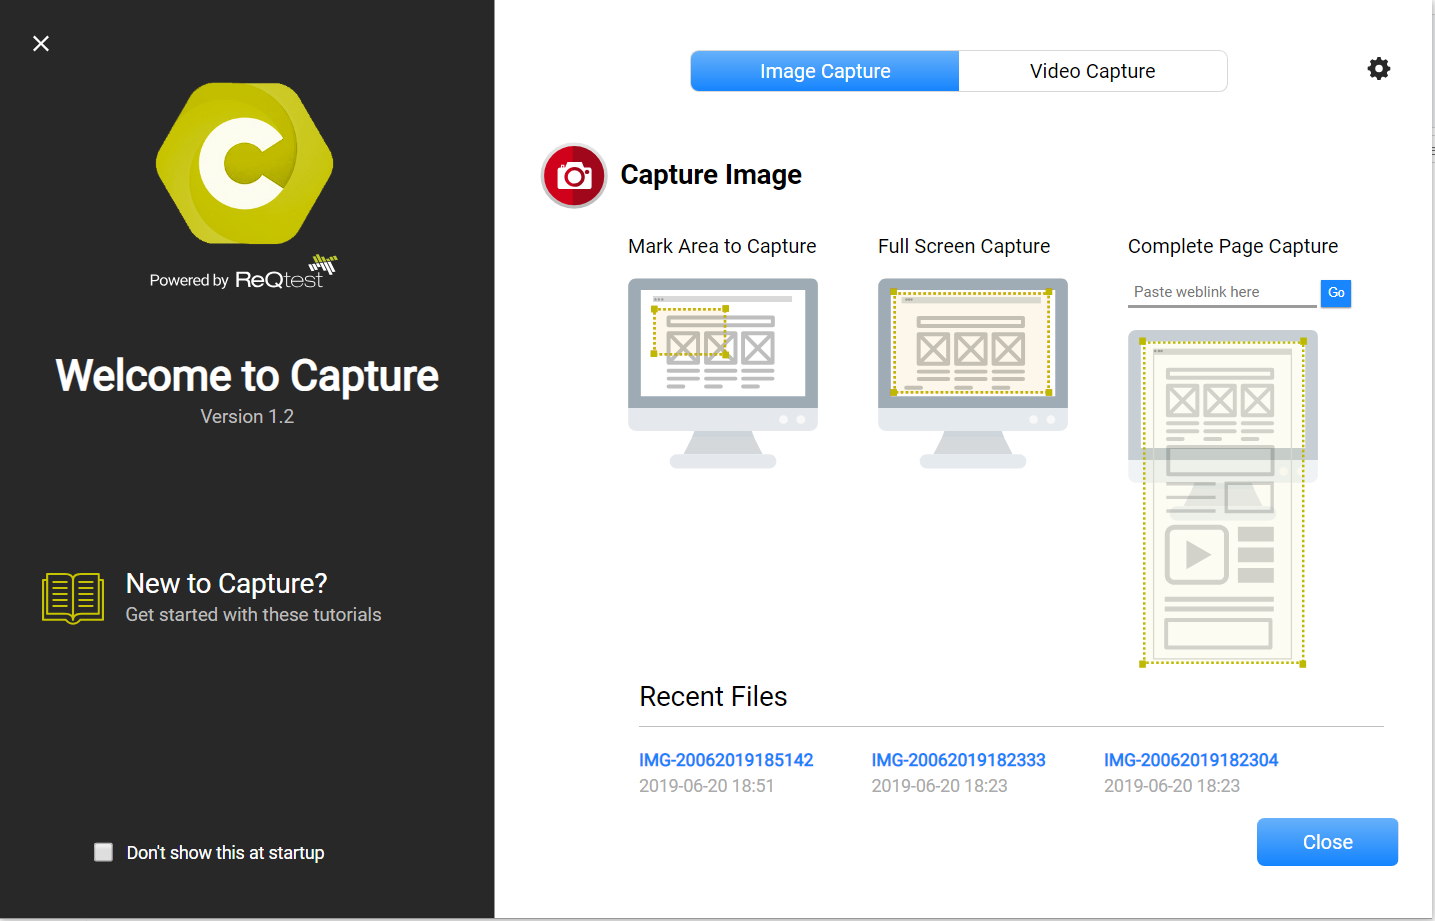 Bug Reporting Tool to Capture Screen Images & Videos